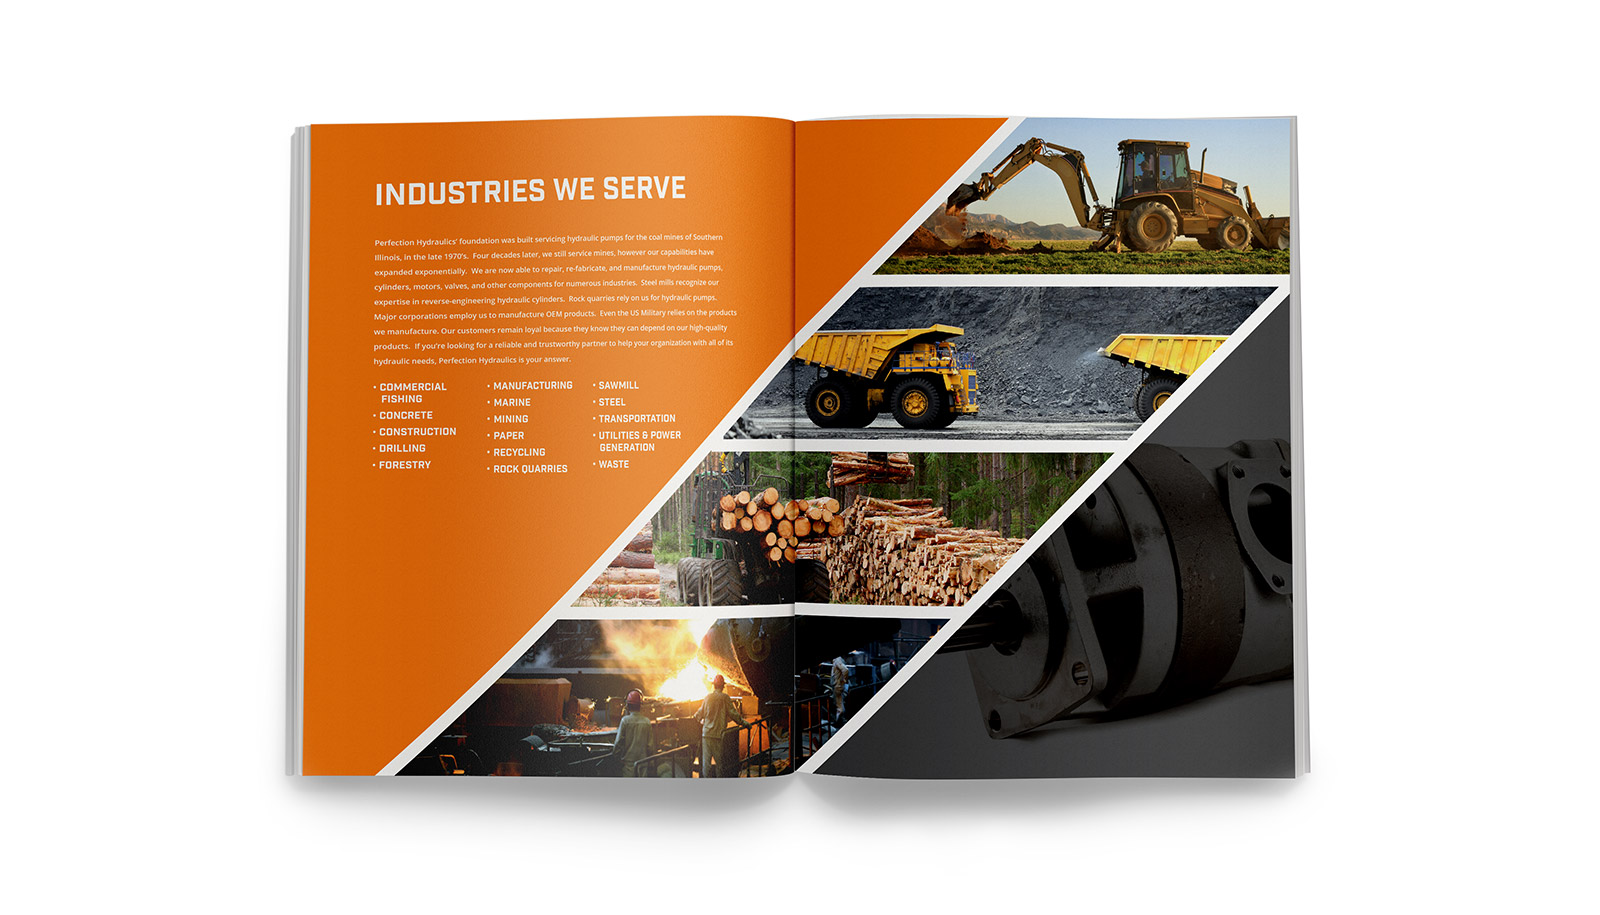 Perfection Hydraulics Brochure Design Layout and Printing  Design View 2